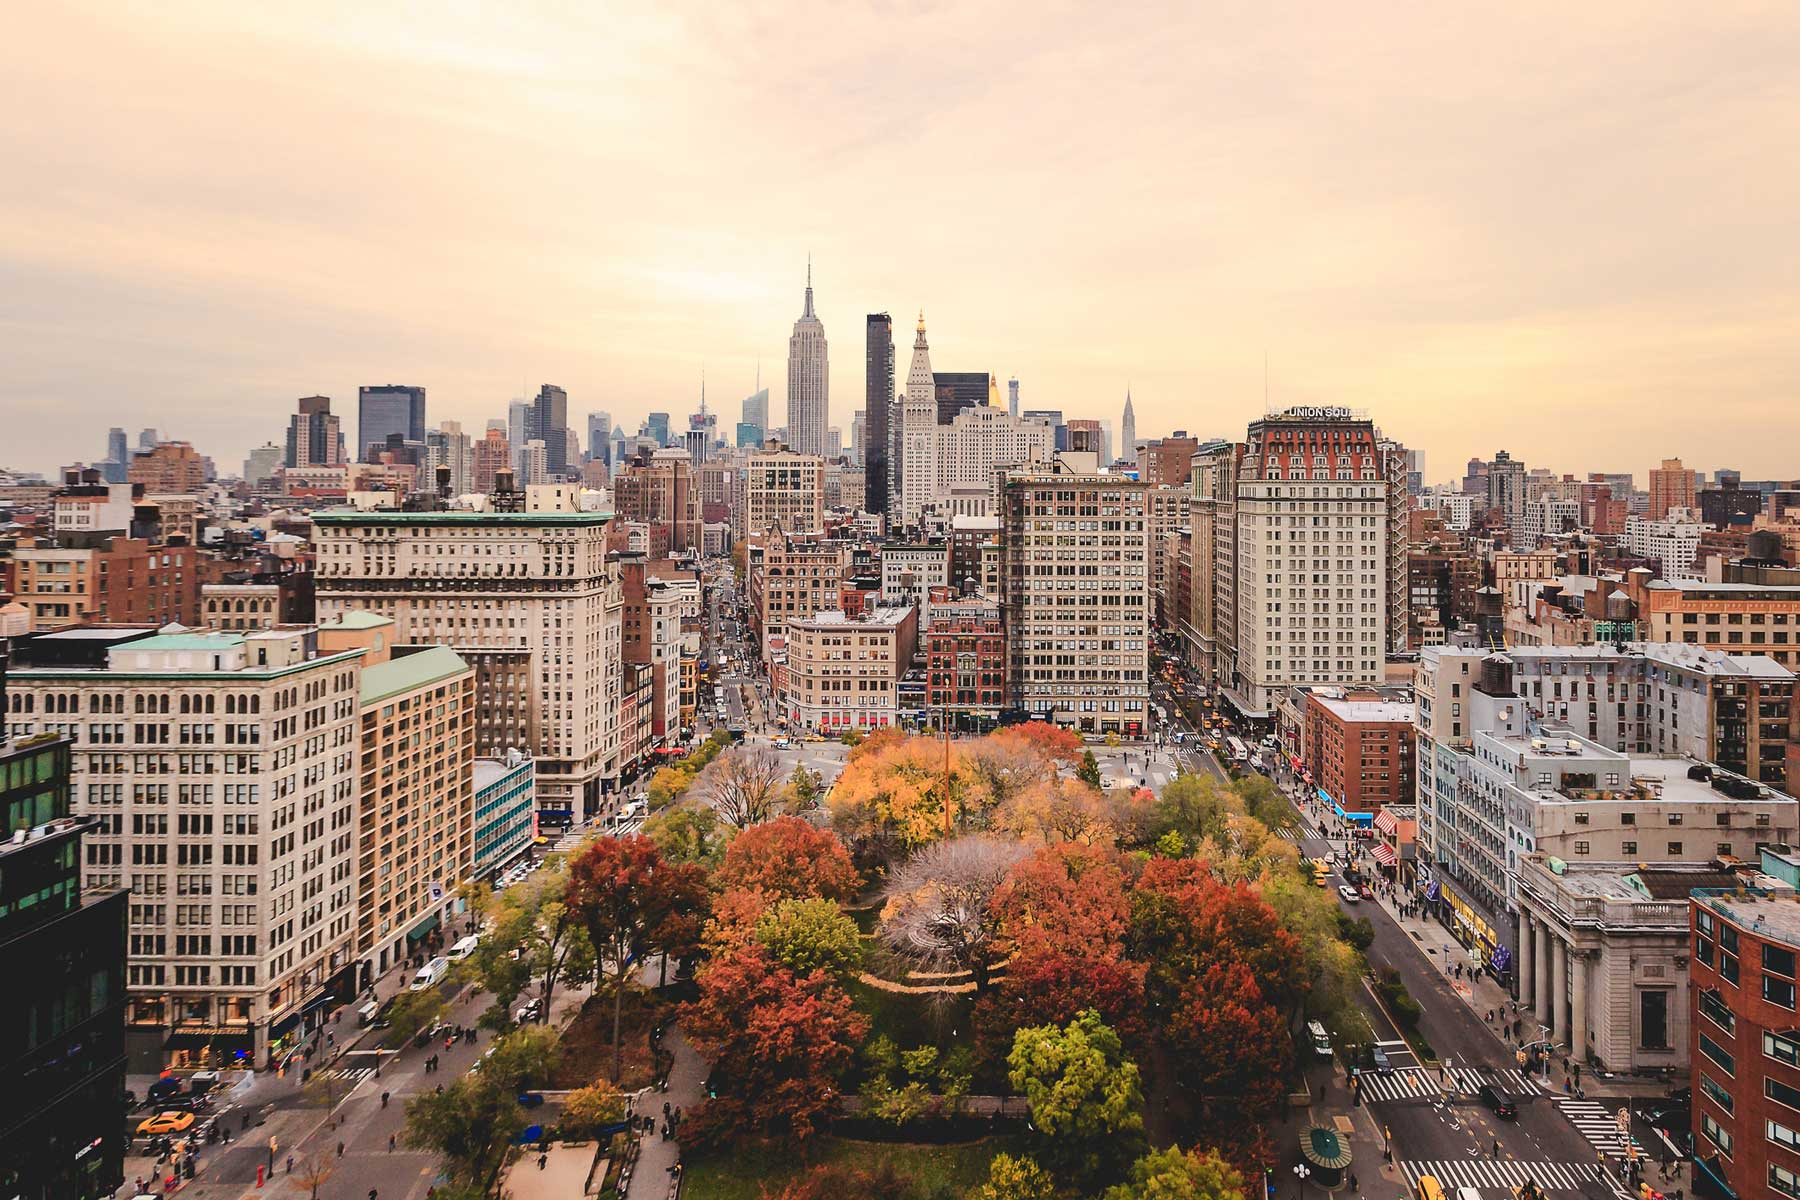 View of buildings in Manhattan during fall